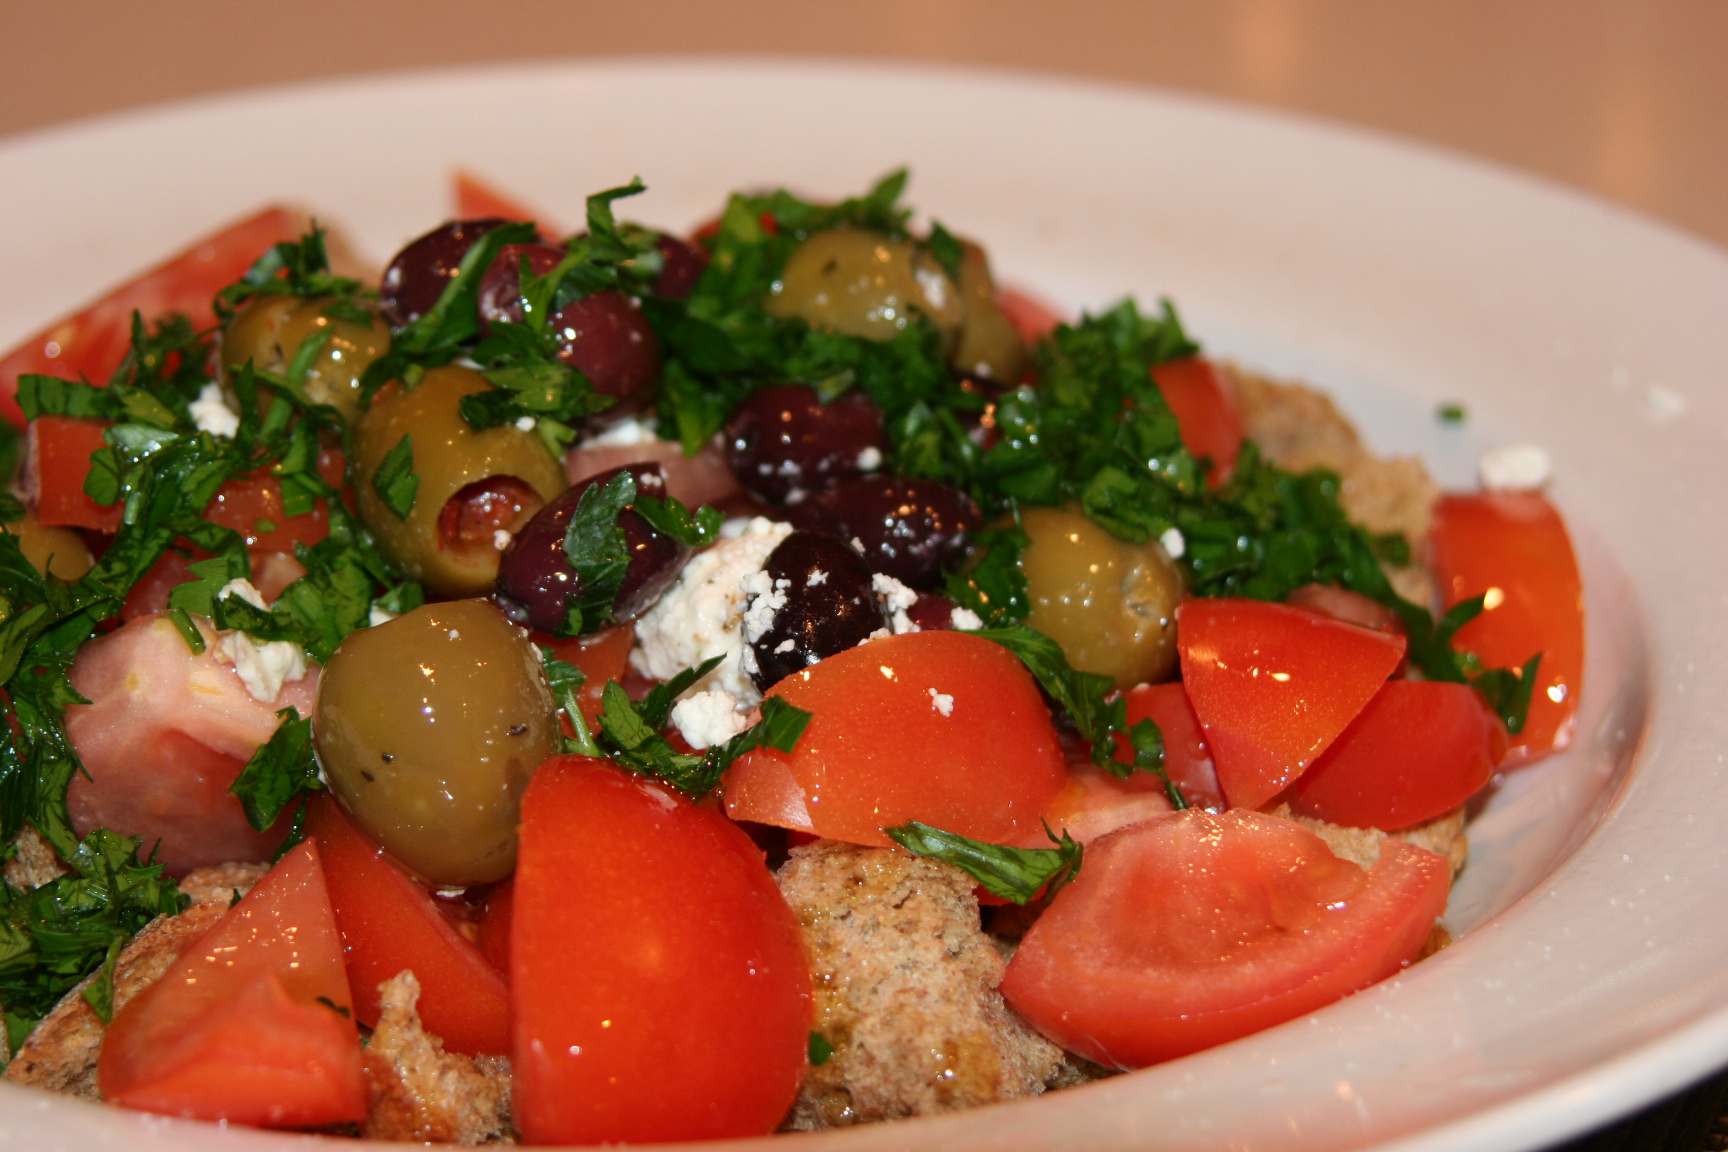 ... and irresistible tomato salad with stuffed olives | Mydinnertoday